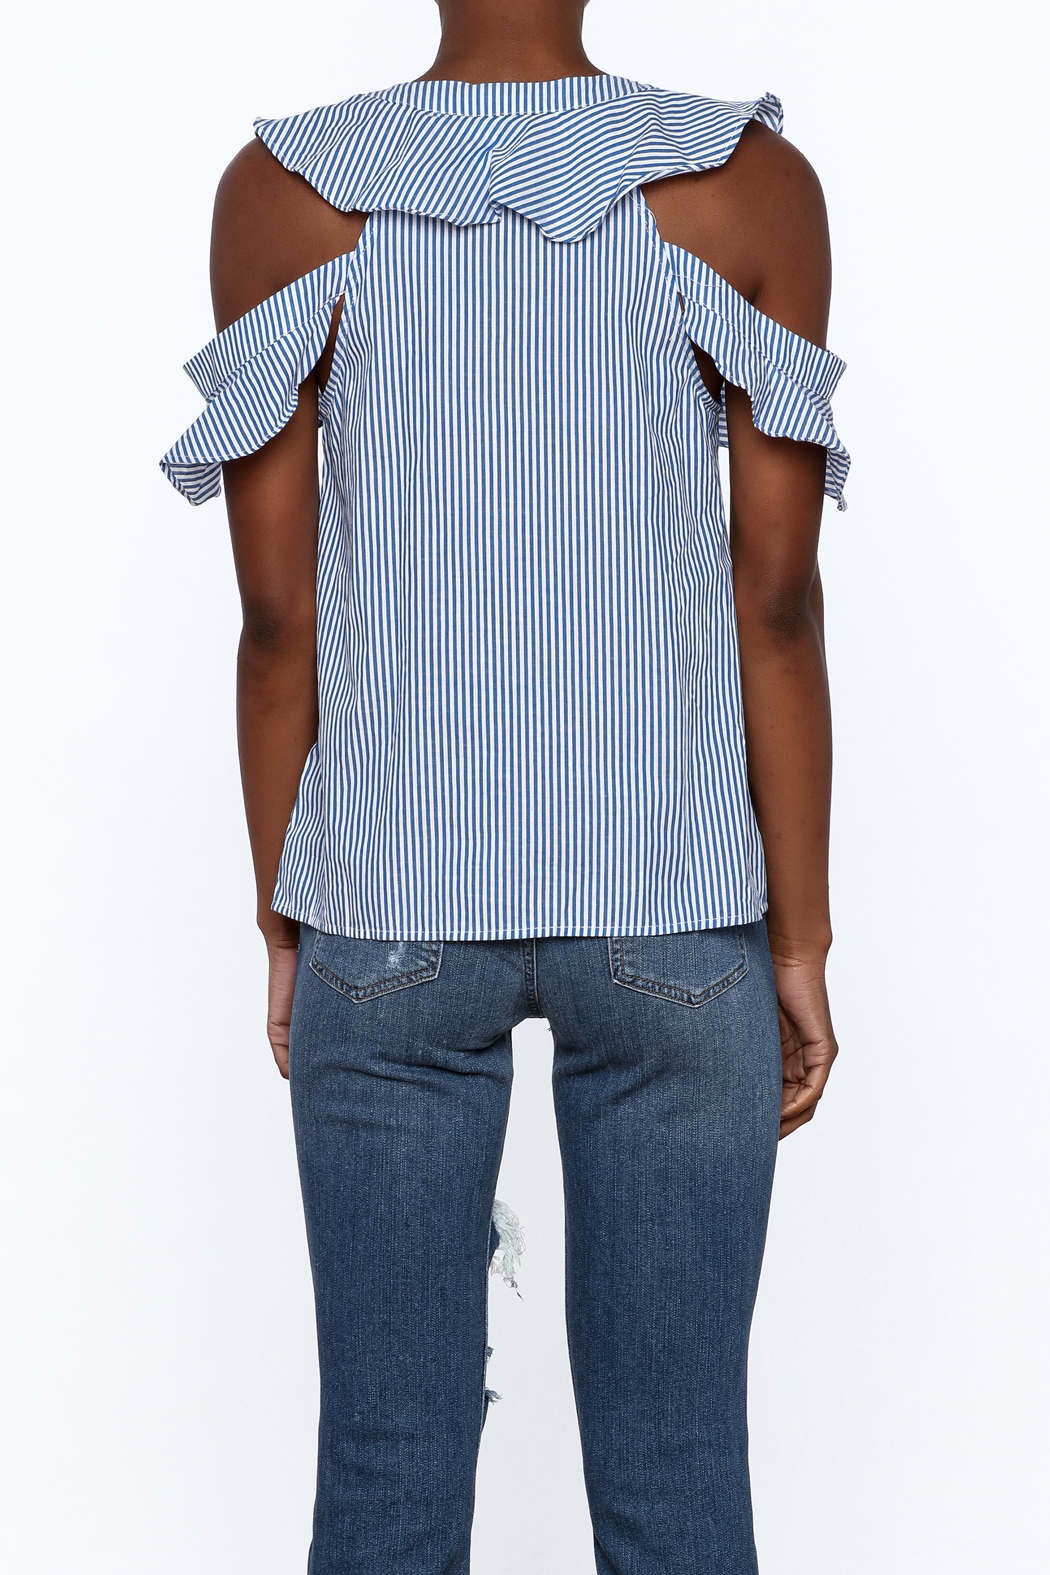 Do & Be Blue Stripe Body Top - Back Cropped Image